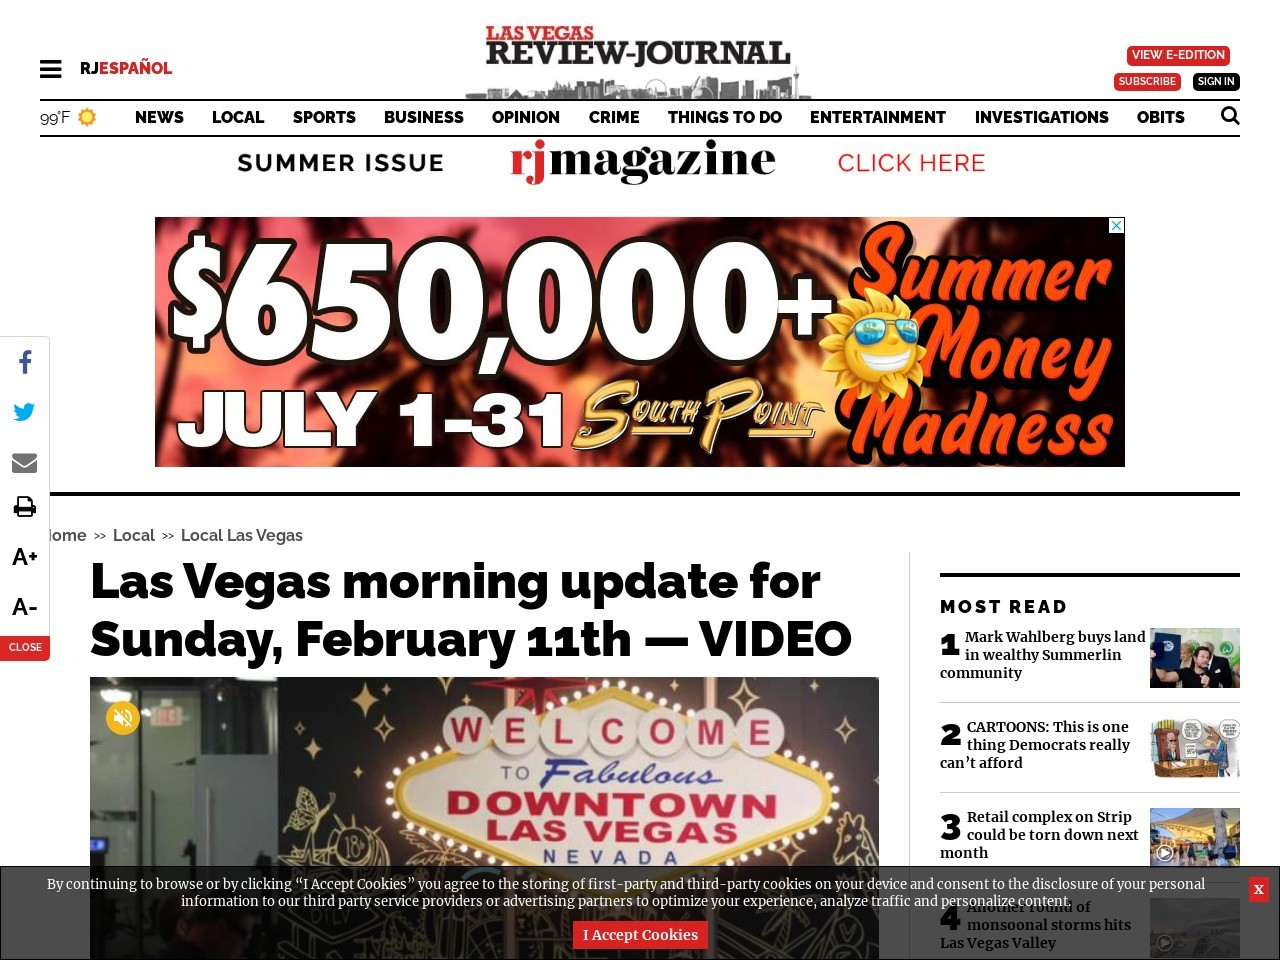 Las Vegas morning update for Sunday, February 11th — VIDEO